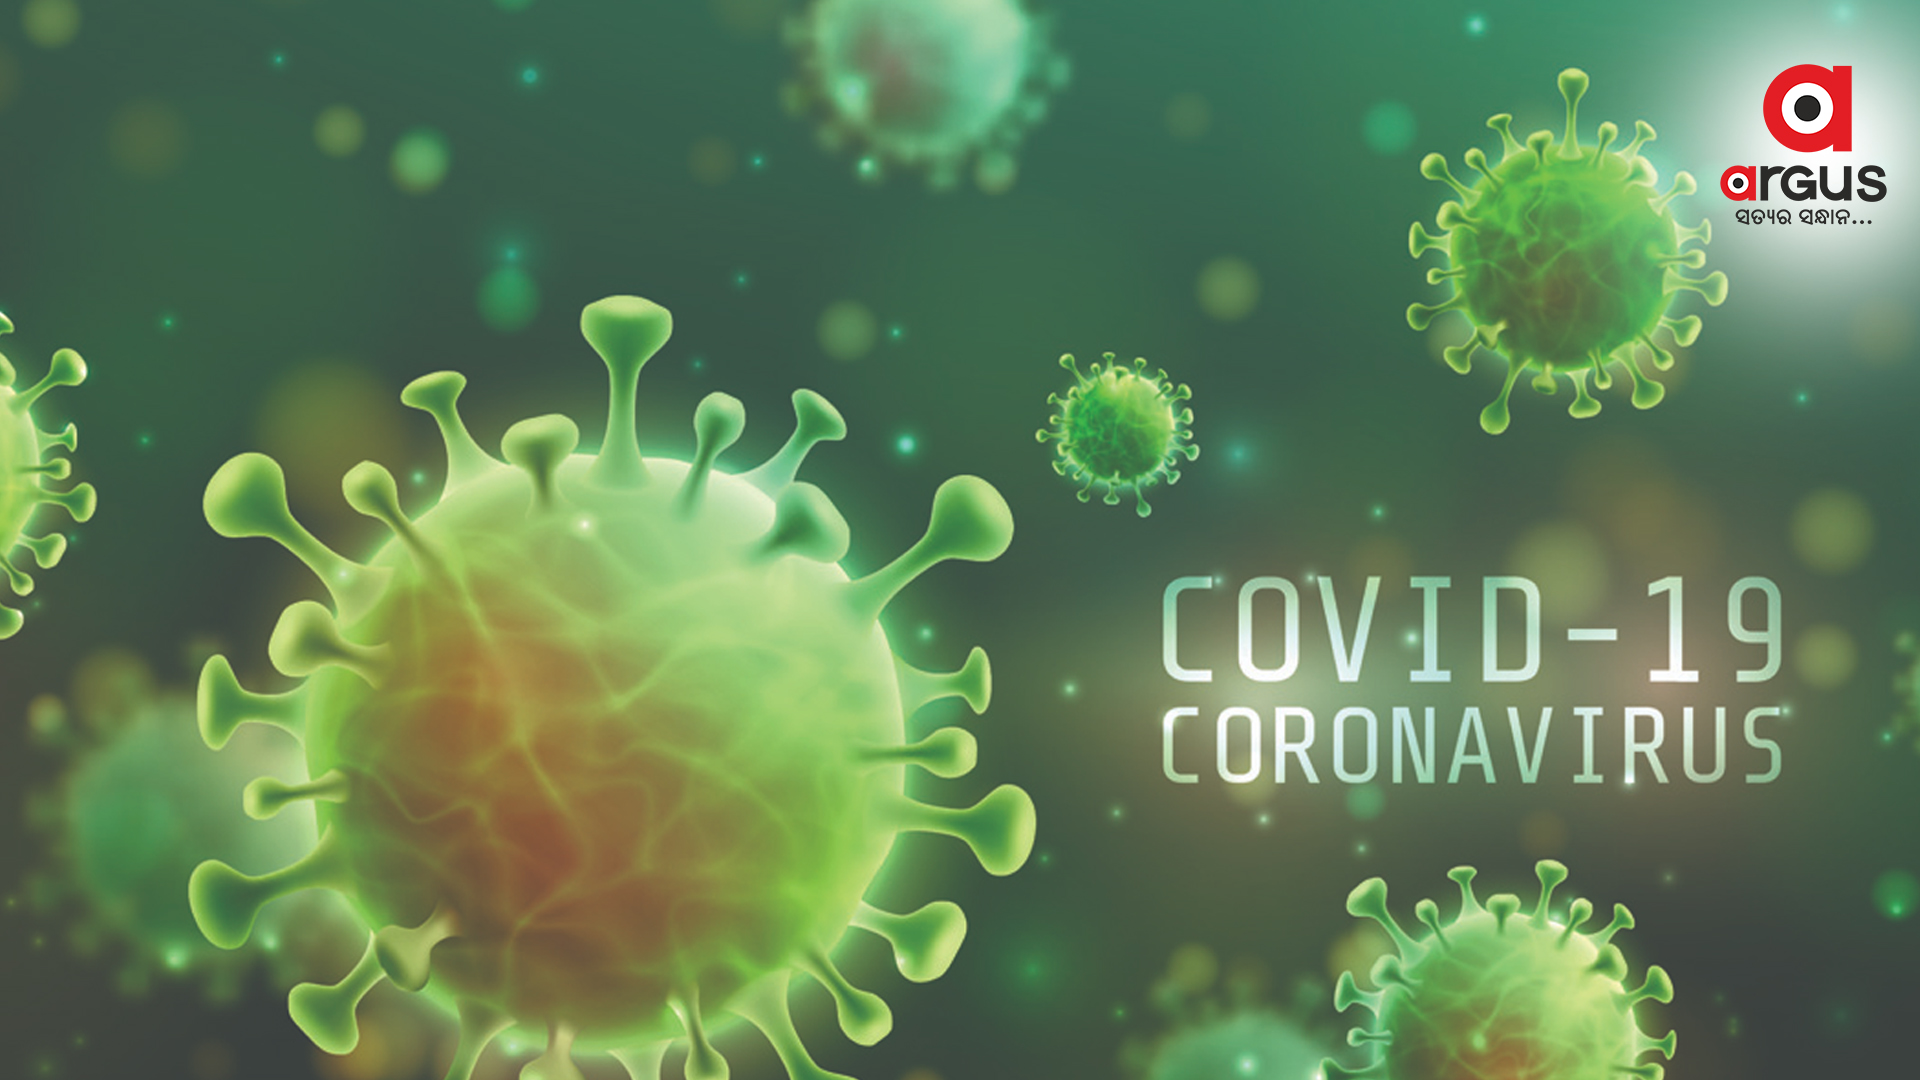 65 more test positive for Covid-19 in Odisha, tally rises to 336578